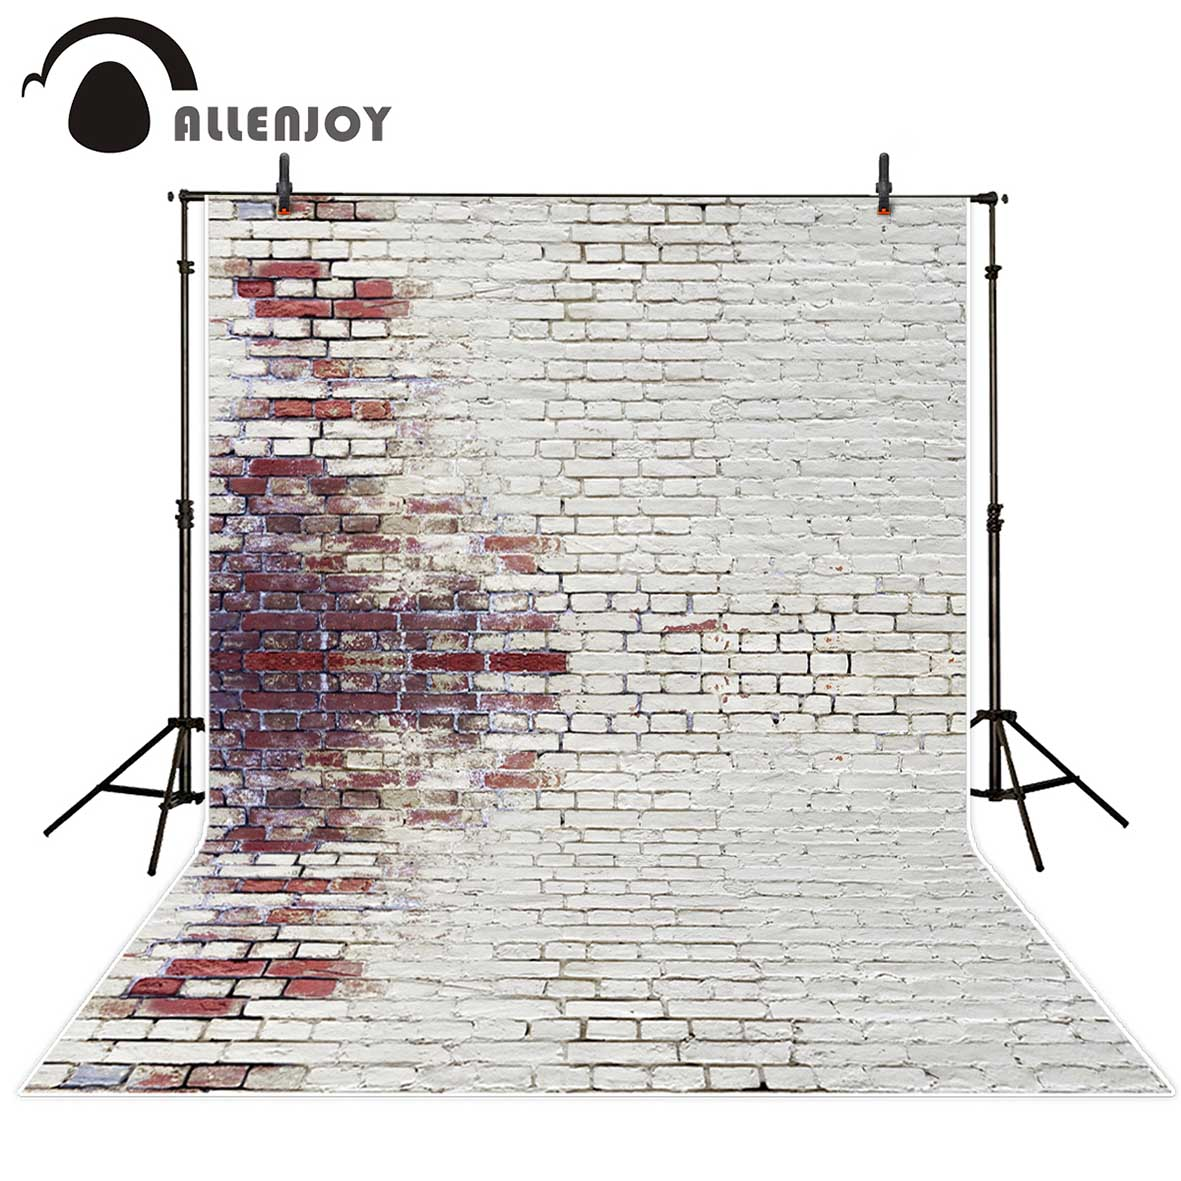 Allenjoy vinyl photography backdrop Variegated white mottled ancient brick wall new background photocall customize photo printer